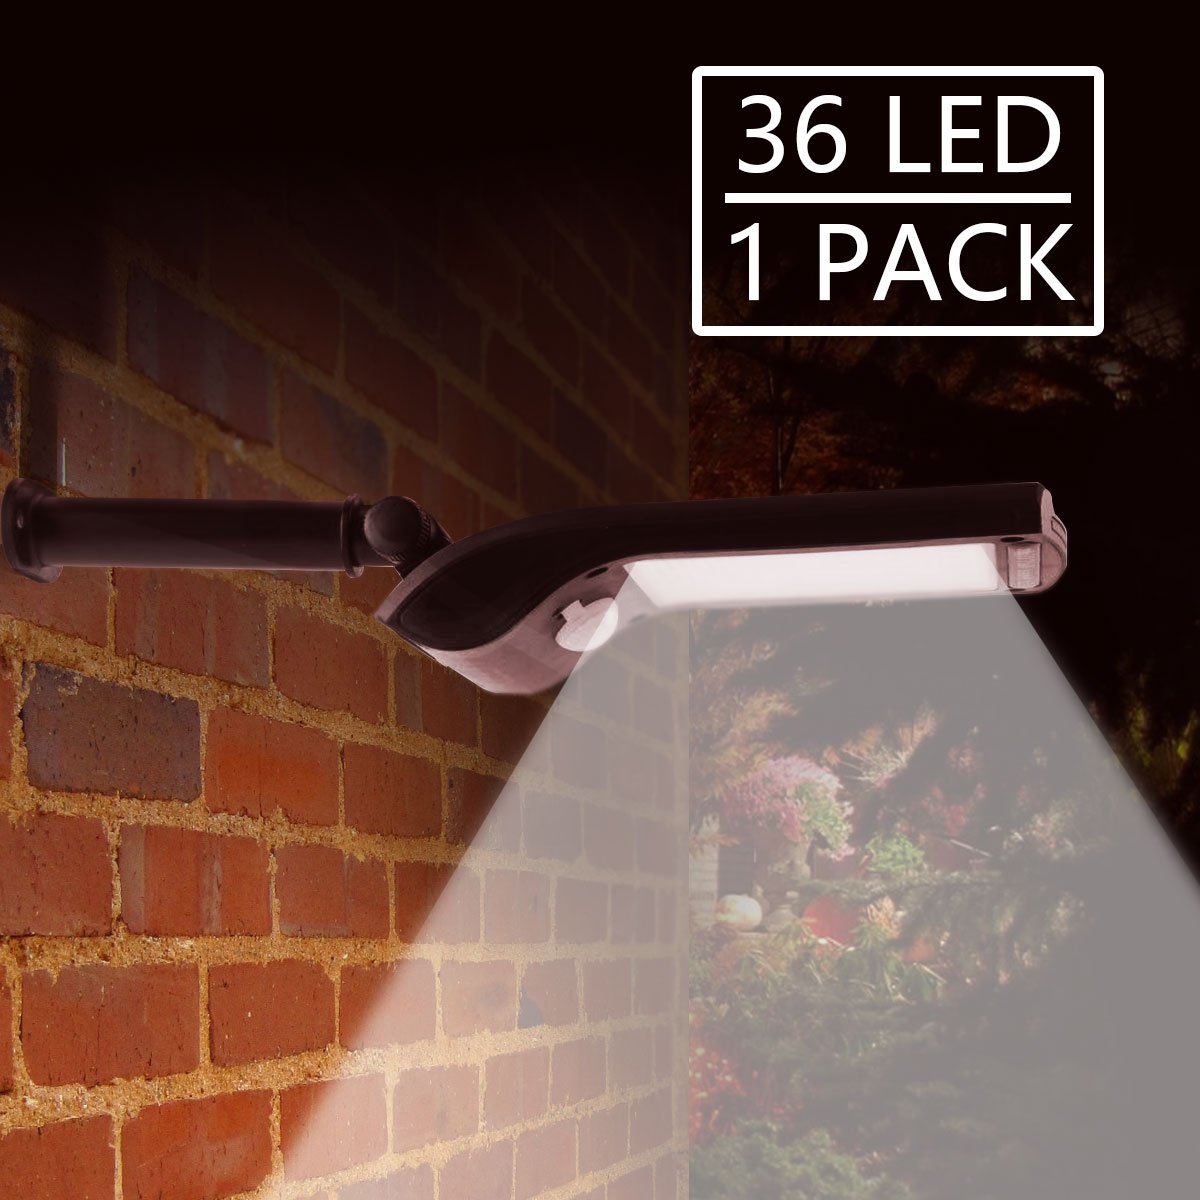 Solar Lights Outdoor with Rotatable Mounting Pole, 36 LED New Generation Super Bright Solar Motion Sensor Security Lights, Wireless Waterproof Wall Lights for Garden, Driveway, Patio, Yard, Walkway by Luzhy